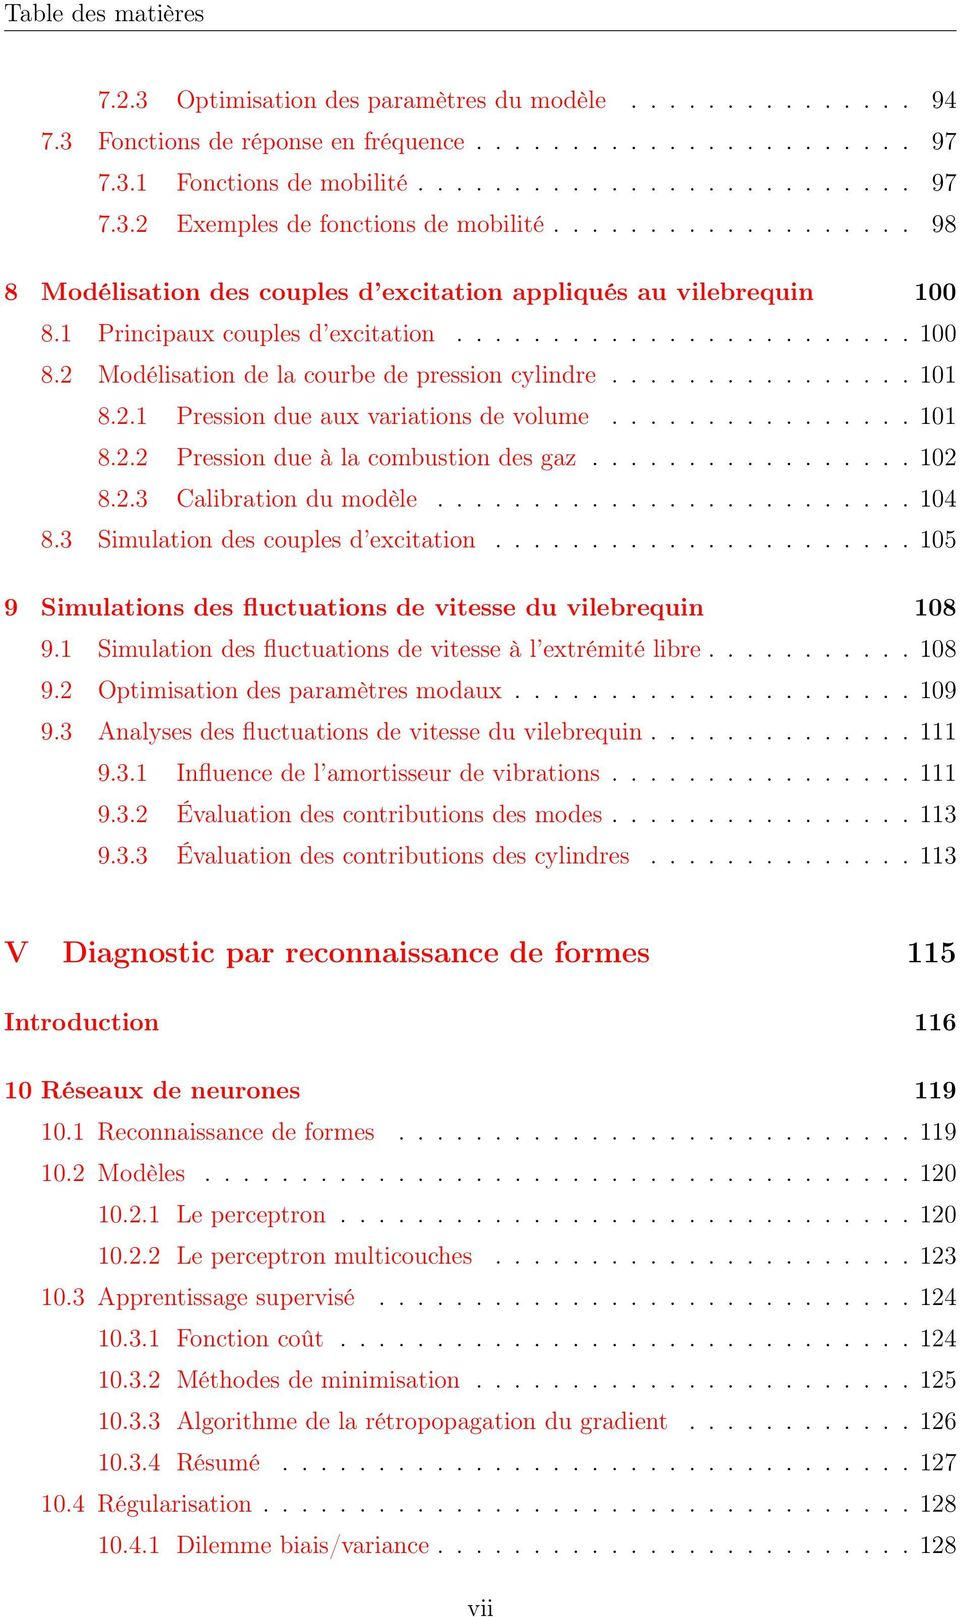 ............... 11 8.2.1 Pression due aux variations de volume................ 11 8.2.2 Pression due à la combustion des gaz................. 12 8.2.3 Calibration du modèle......................... 14 8.